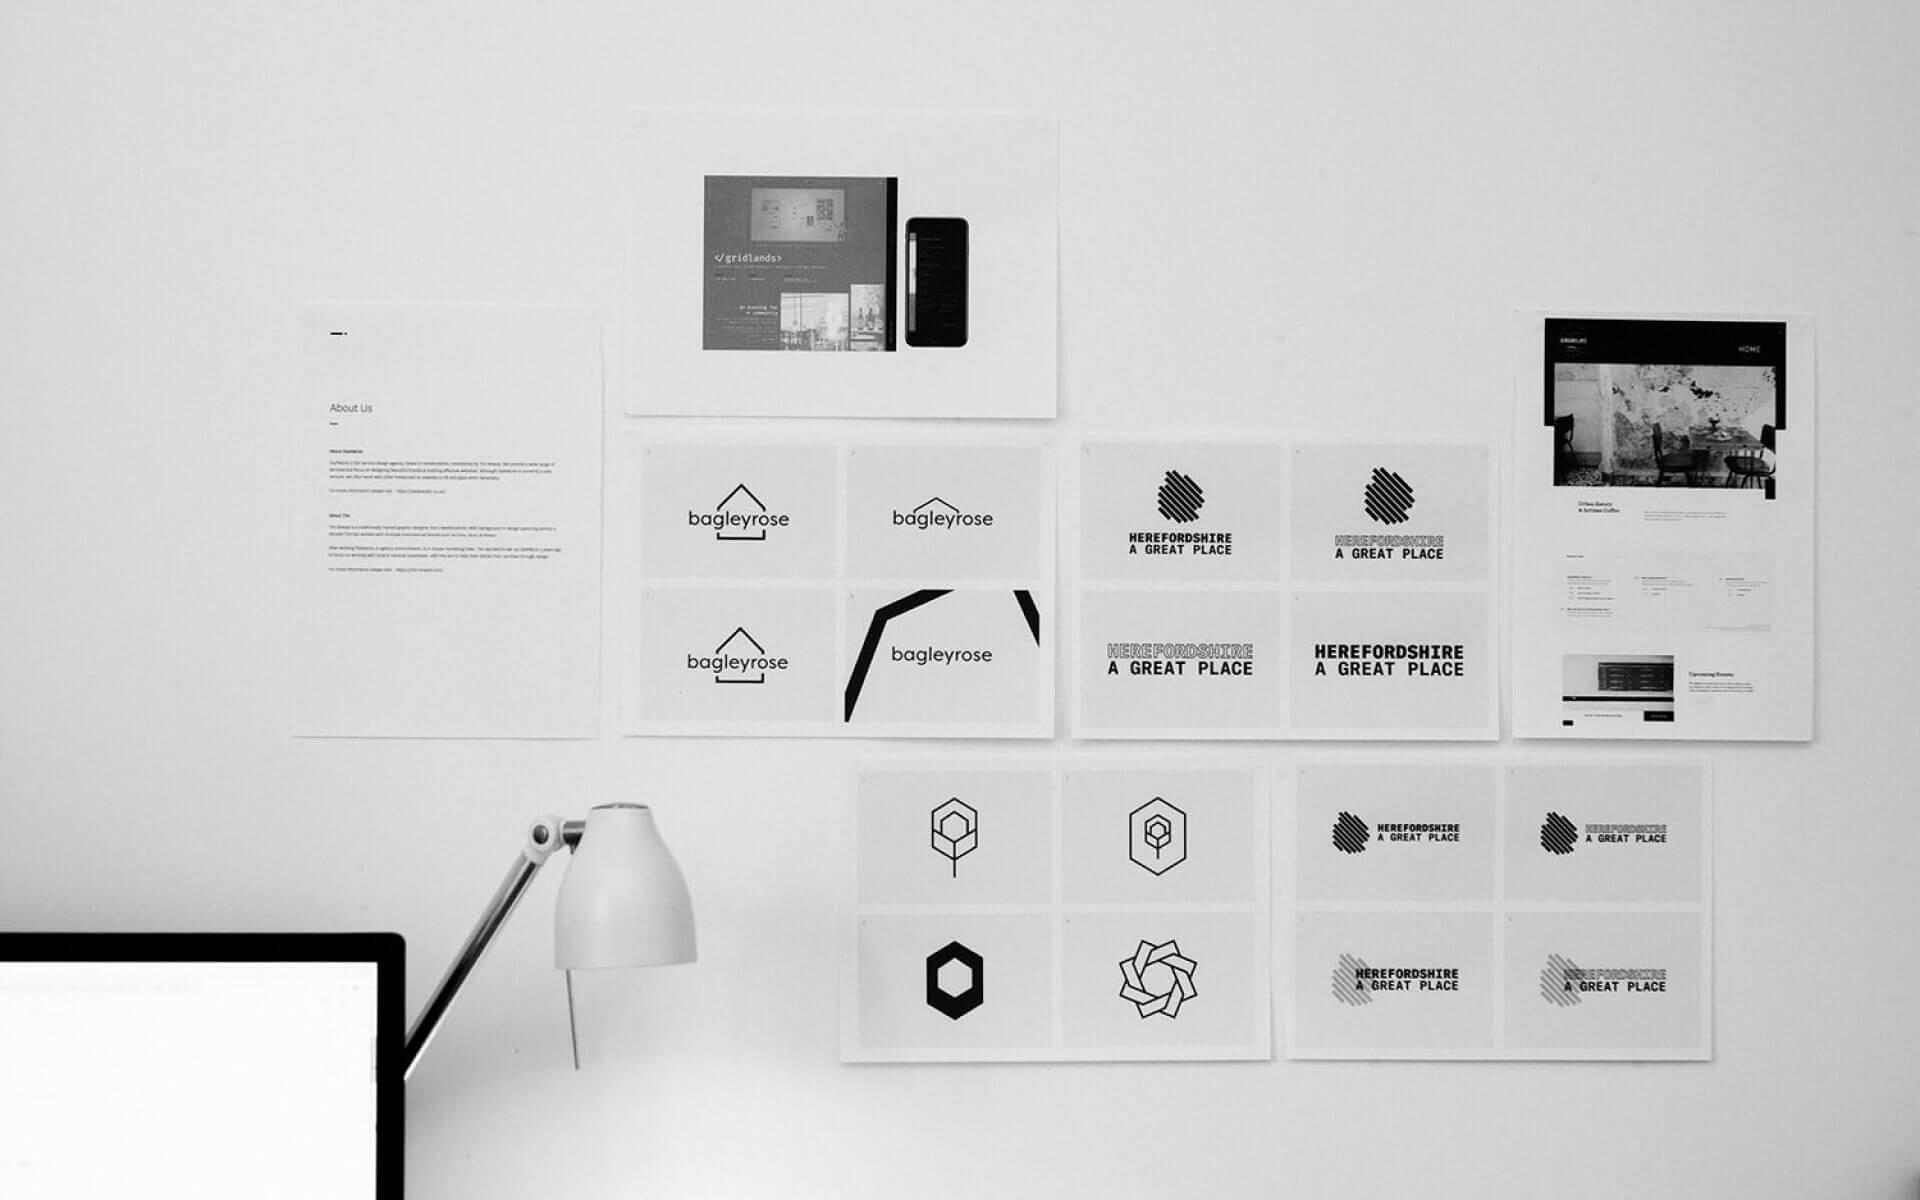 A collection of work in progress designs pinned to a wall.